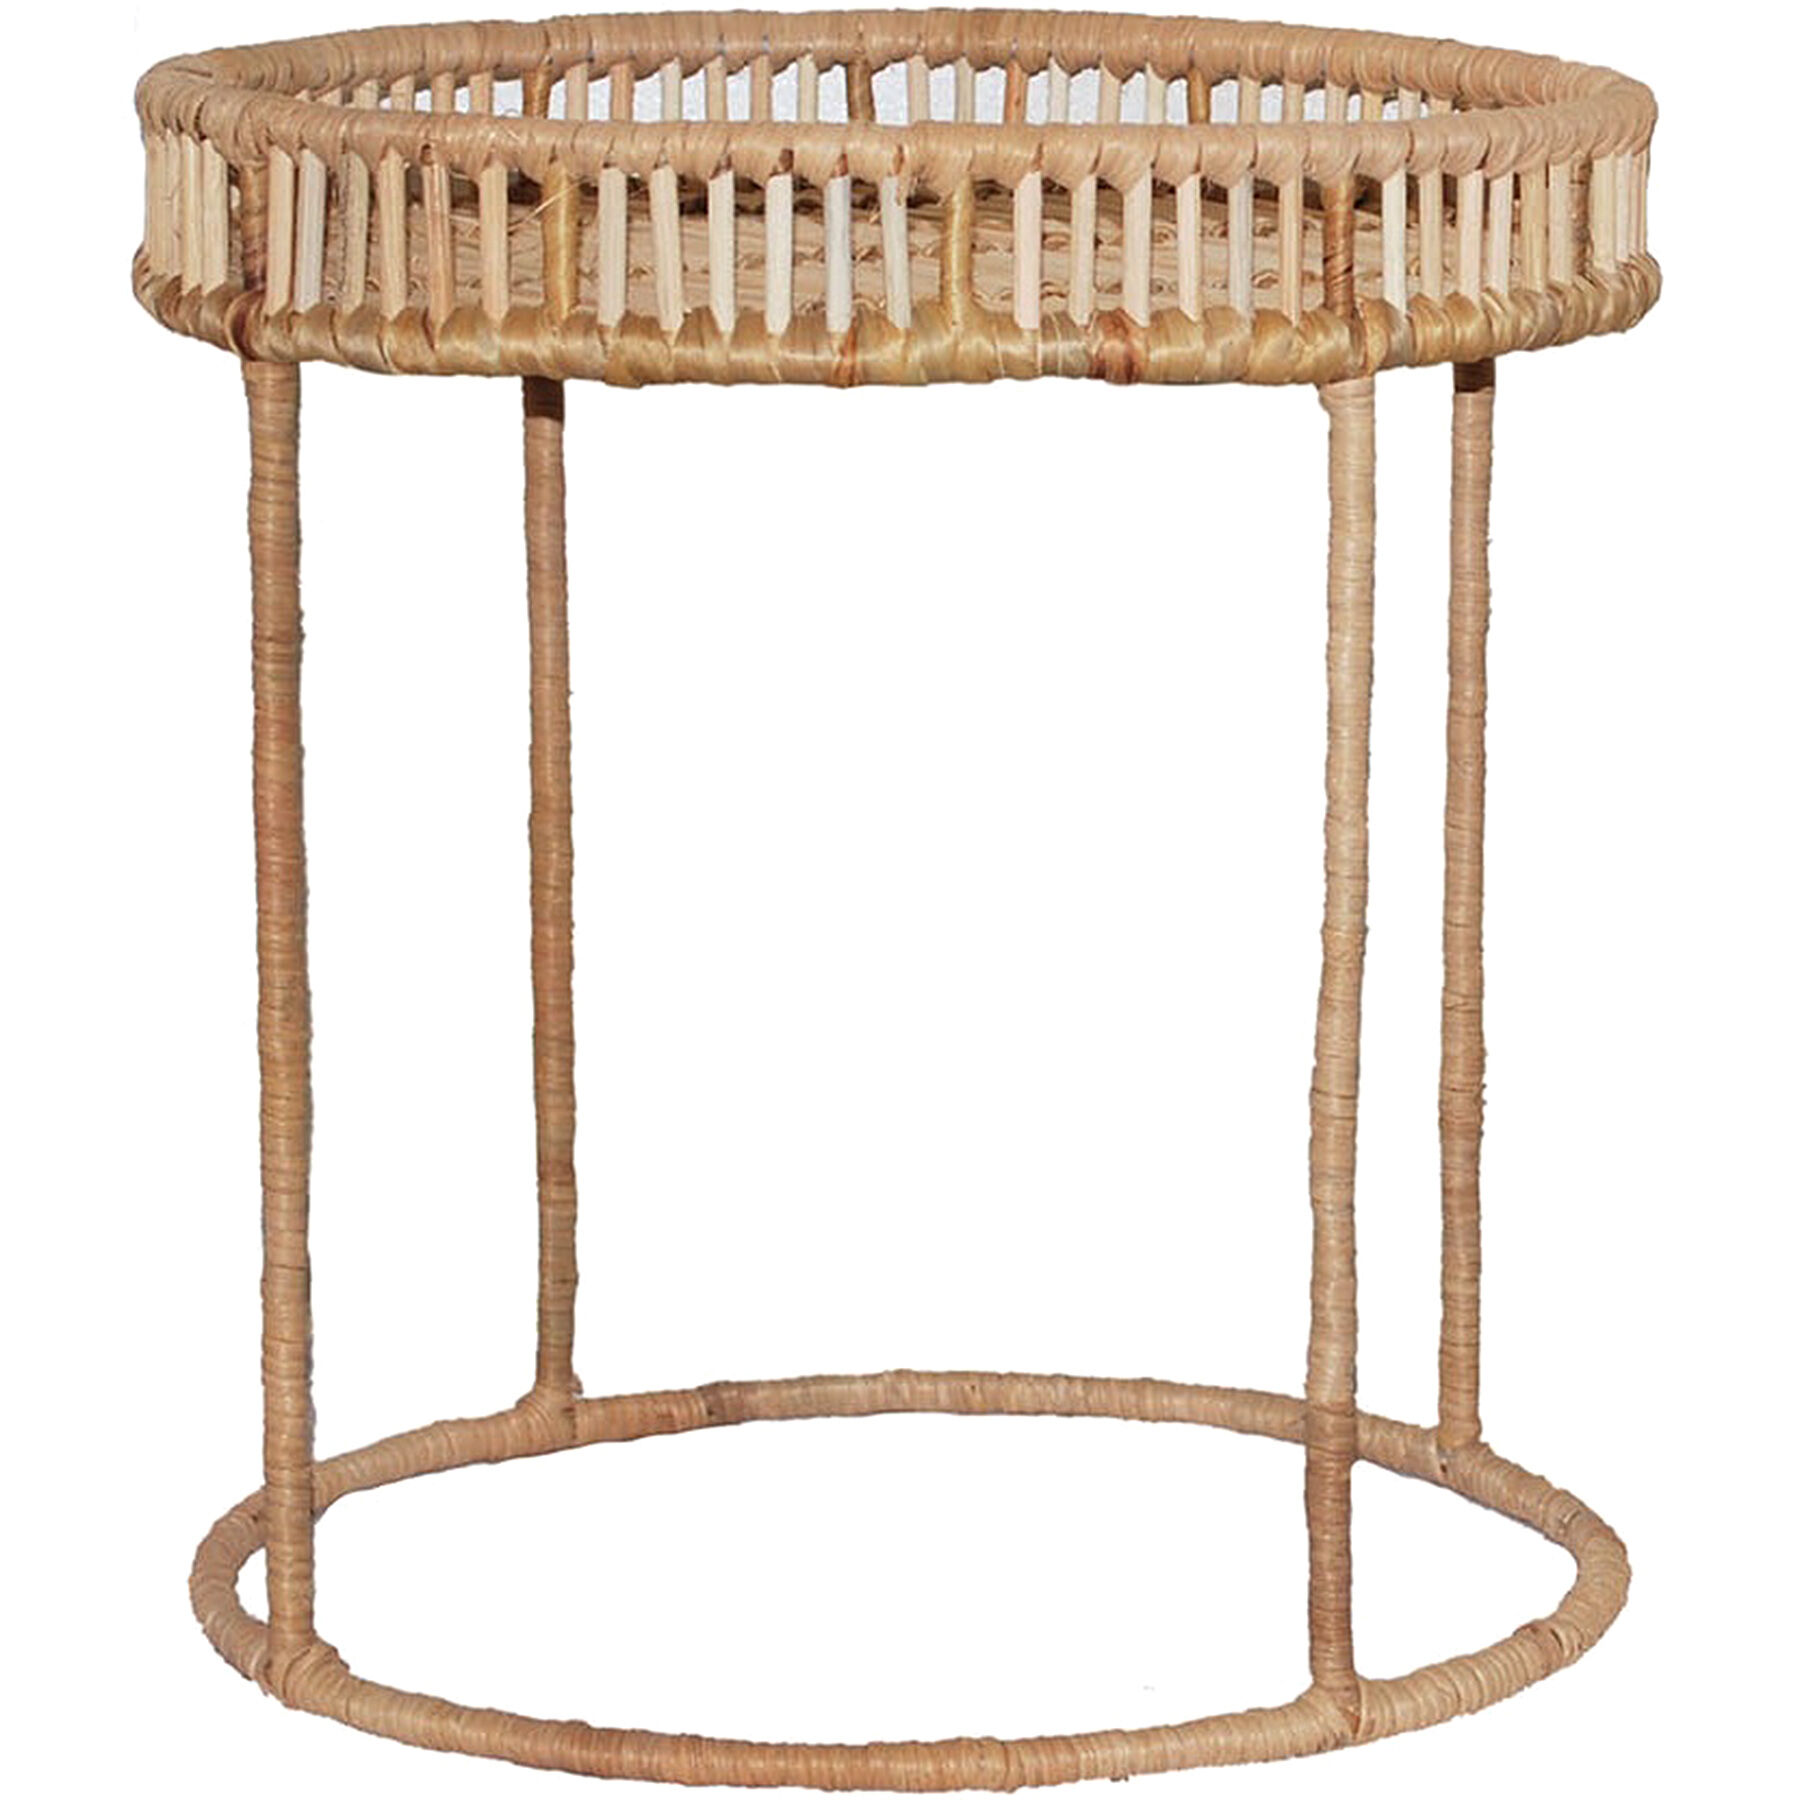 Rattan Table 20 Natural Rattan Tray Table